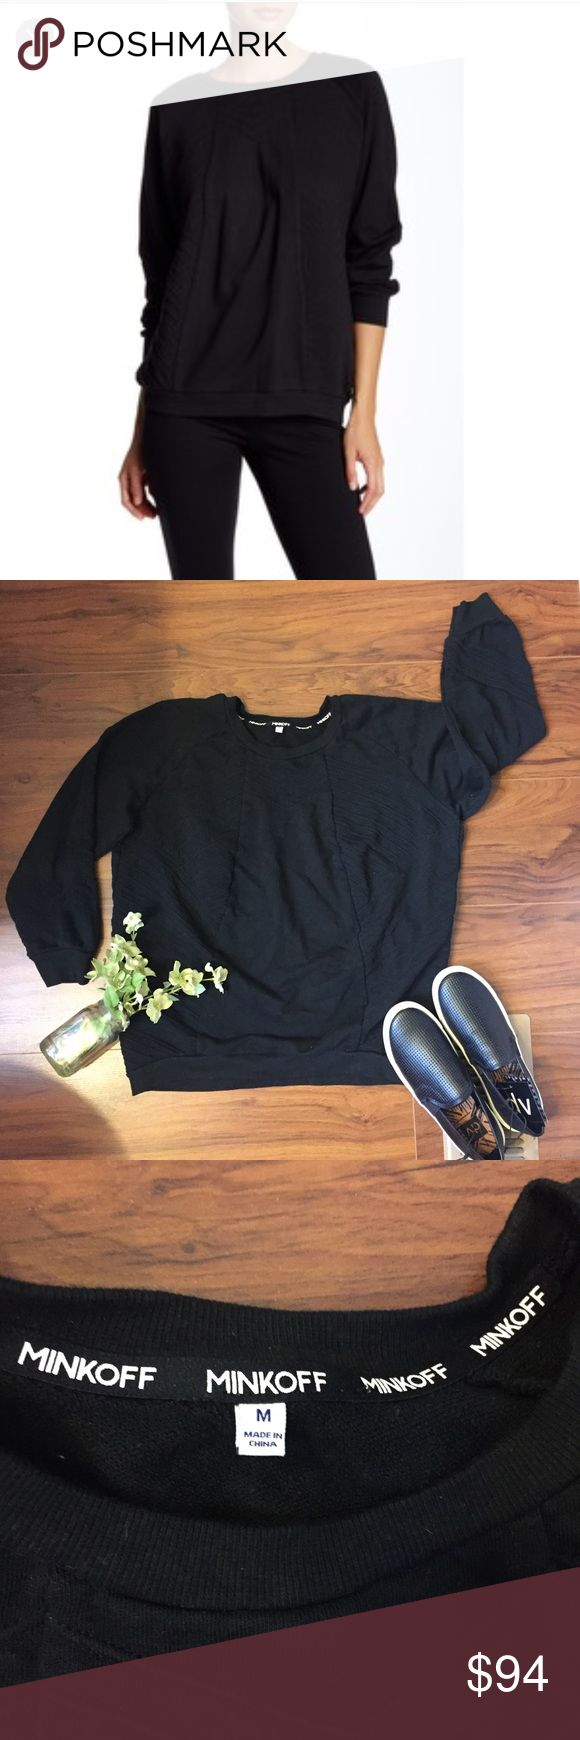 """Rebecca Minkoff Tilly Sweatshirt Black Black embossed 3/4 sleeve crew sweatshirt. Cozy and chic! 23.5"""" shoulder to hem, about 22"""" armpit to armpit flat across. Washed and worn a few times in good condition! Gray stock photo is to better show embossed pattern- it is difficult to see in the black stock photo and my photos. Rebecca Minkoff Tops Sweatshirts & Hoodies"""